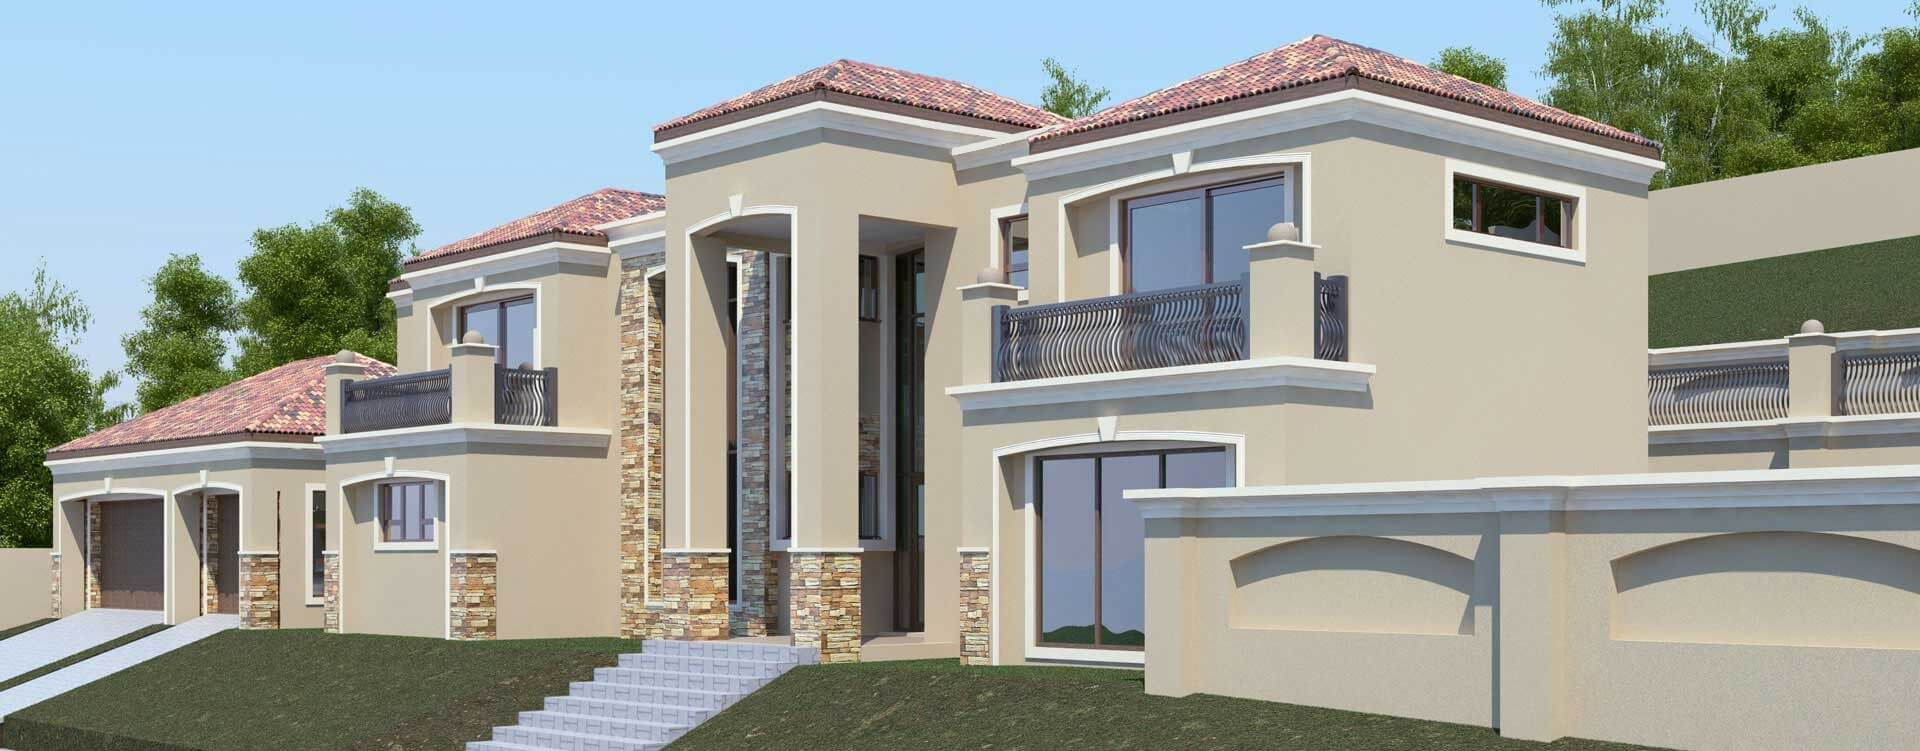 Nethouseplans affordable house plans for Affordable home plans